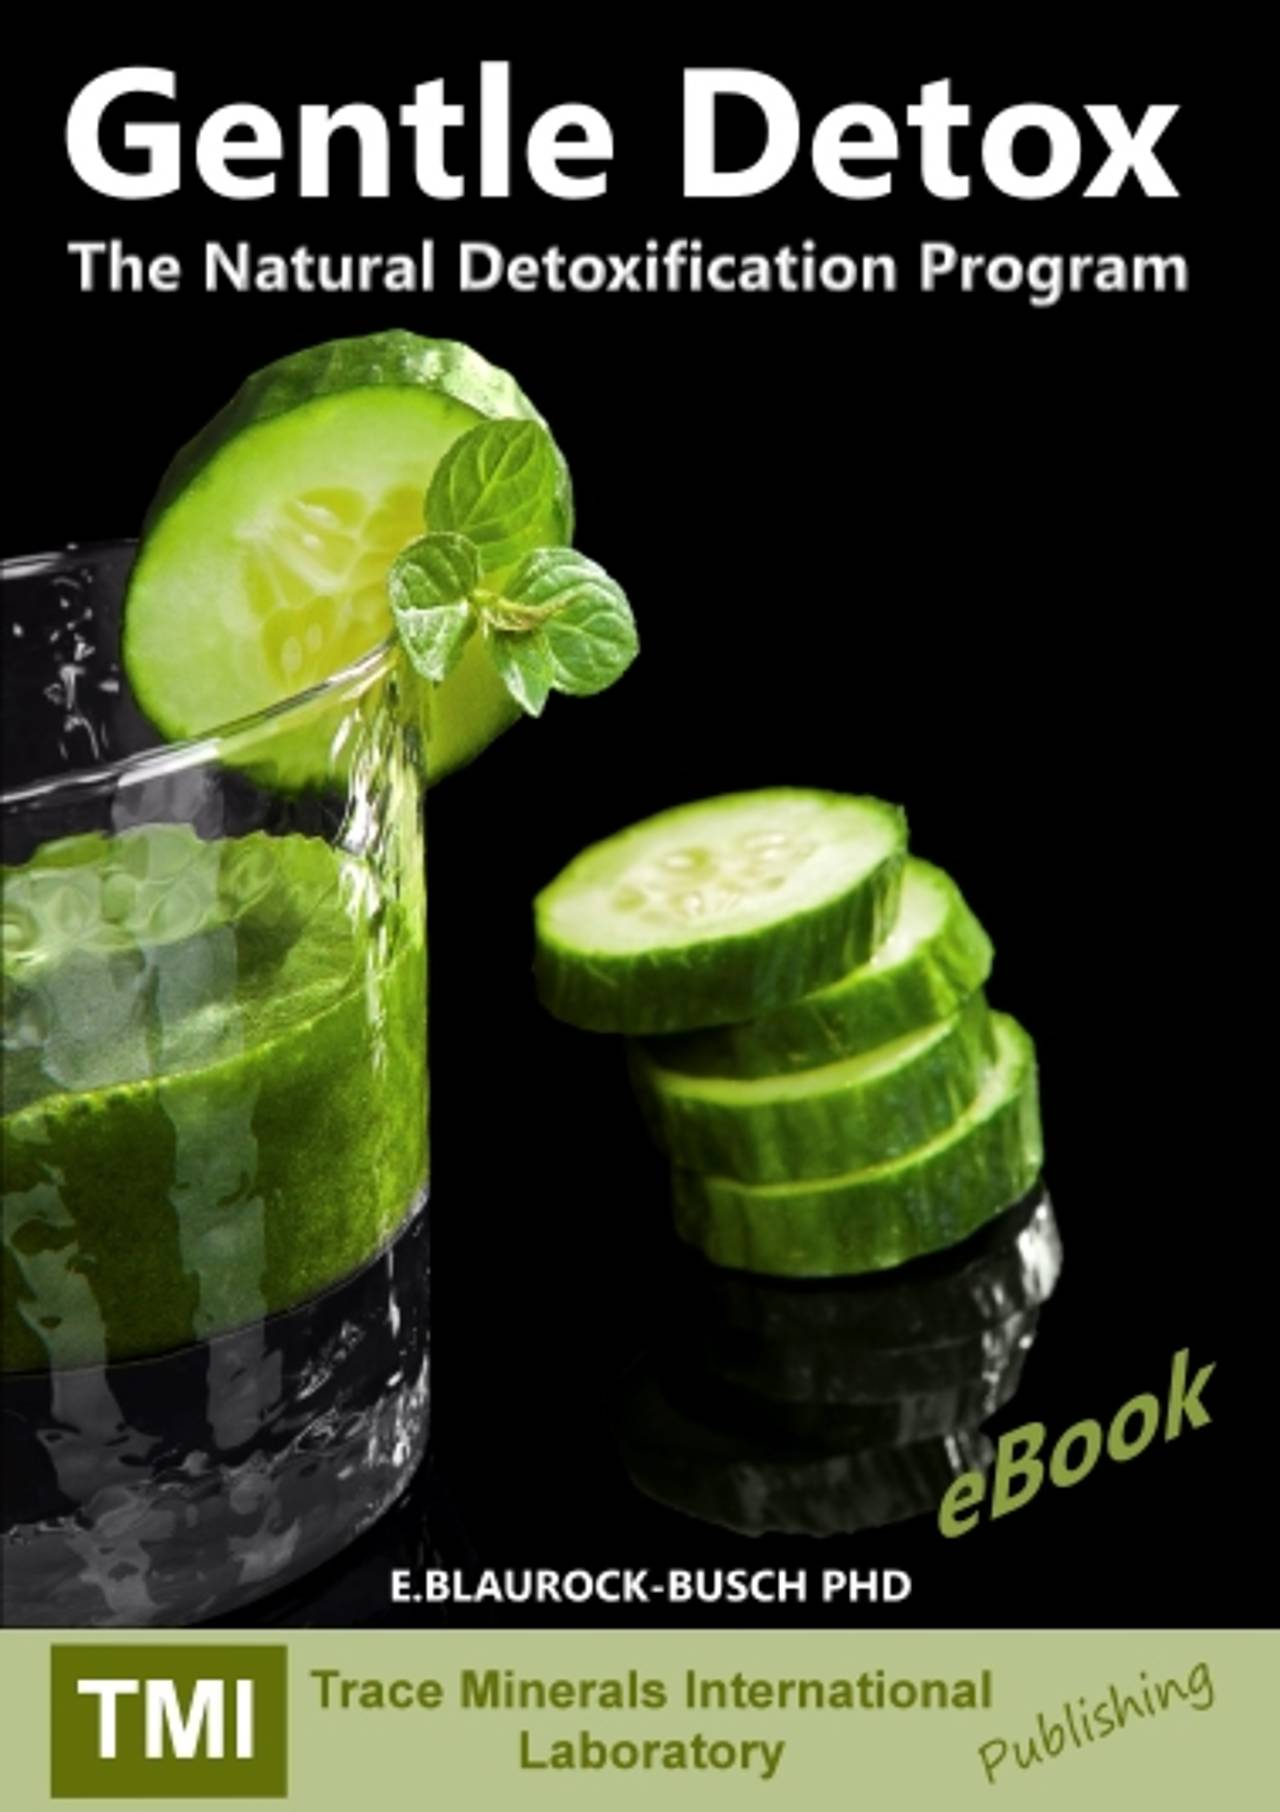 Gentle Detox - The Natural Detoxification Program Book Cover